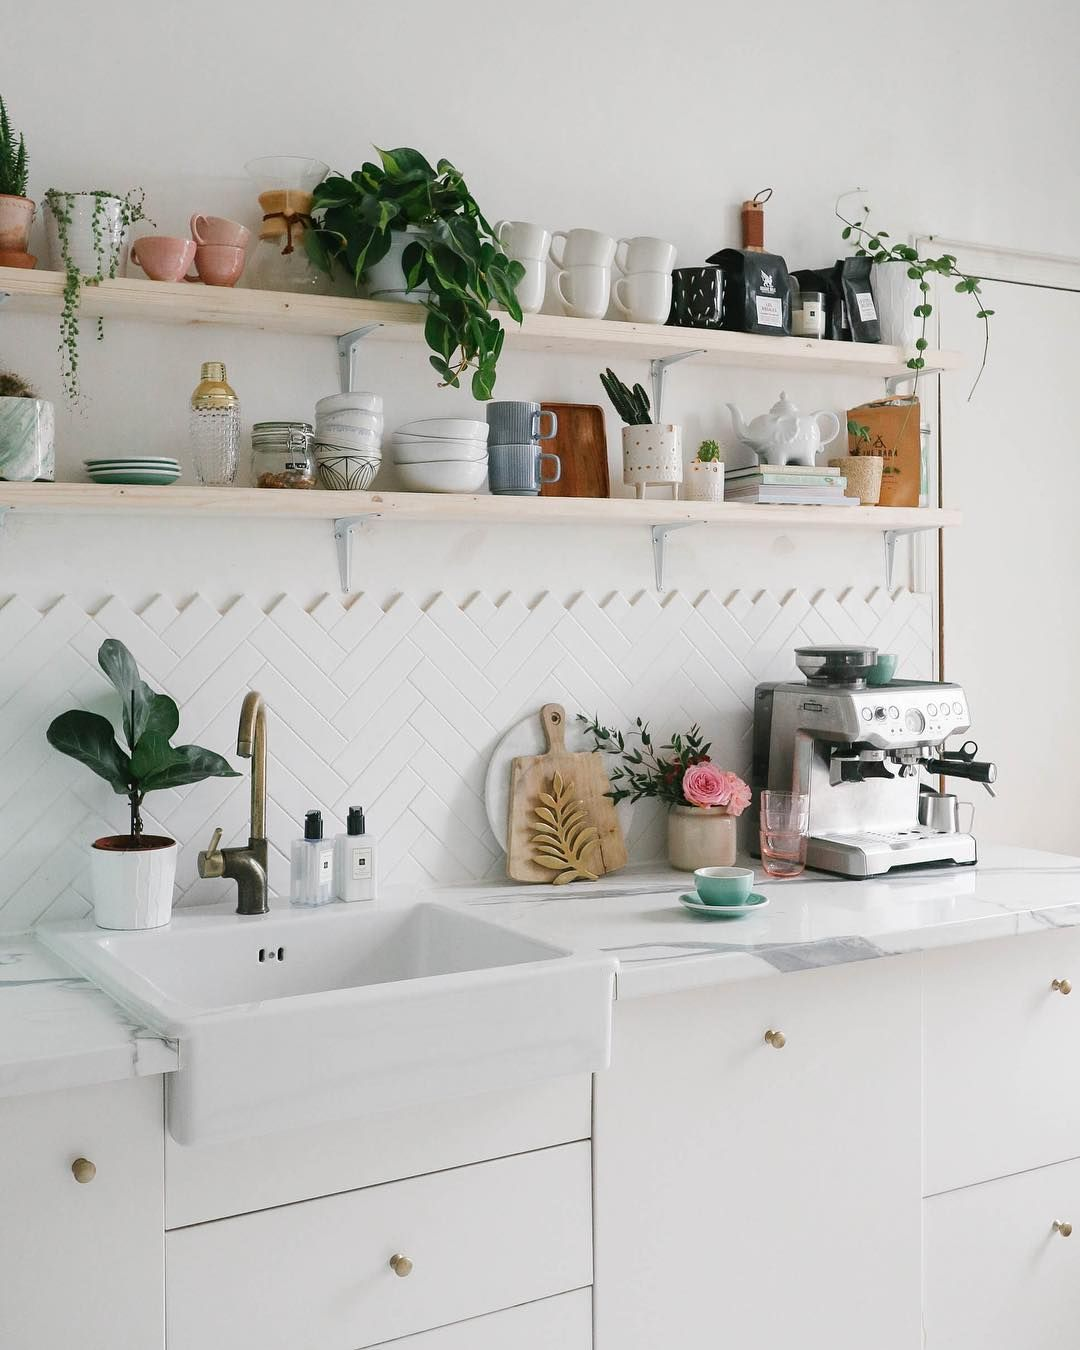 Offee Until It S Time For Wine The Perfect Sunday Morning Scenes In Our Kitchen Kitchen Shelves Decor Kitchen Interior